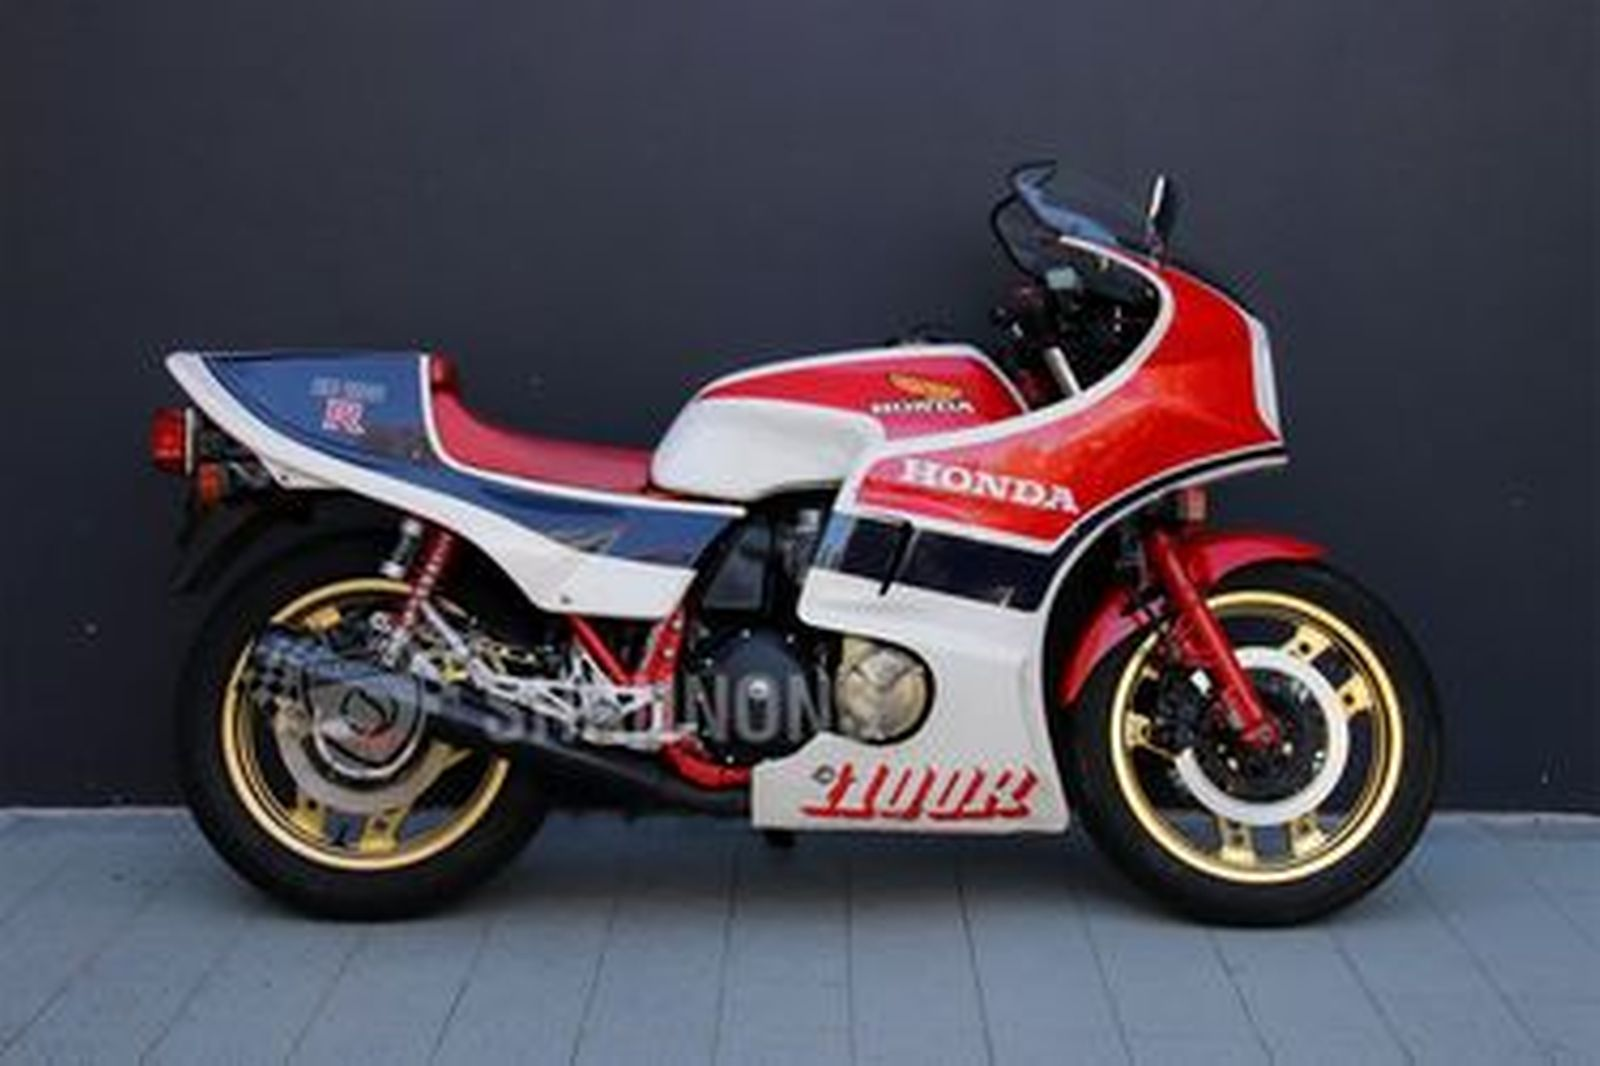 Sold: Honda CB1100RC Motorcycle Auctions - Lot 24 - Shannons